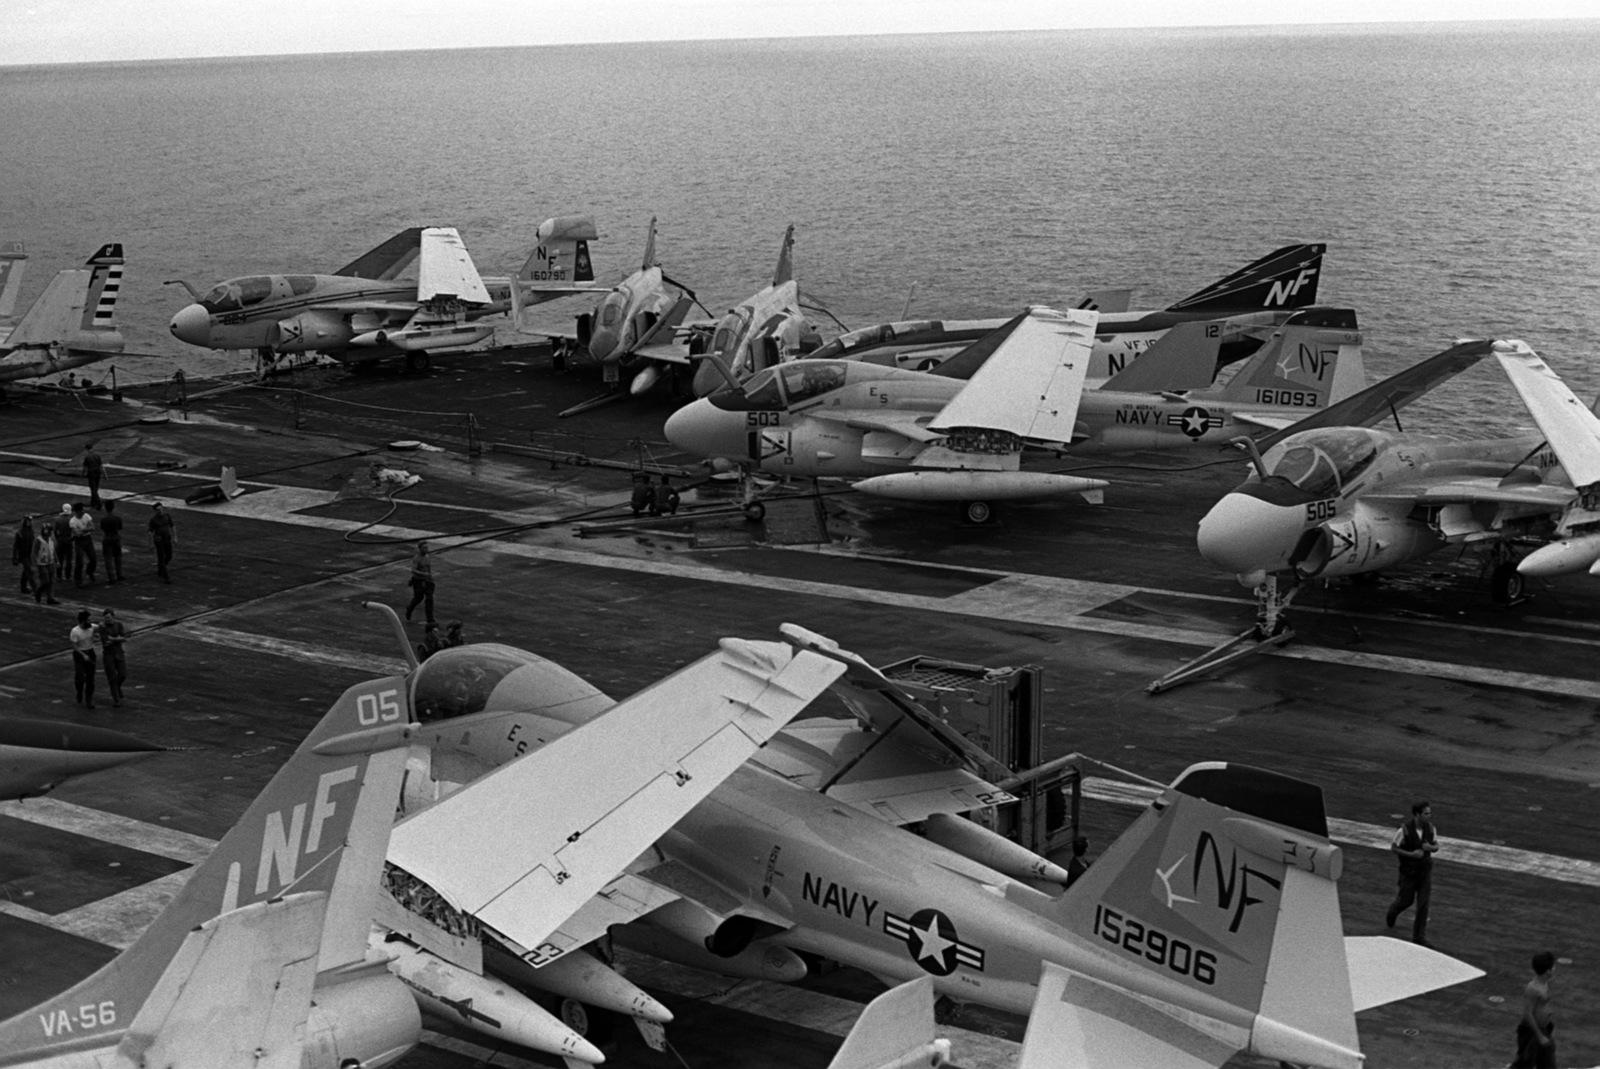 A view of aircraft parked on the flight deck of the aircraft carrier USS MIDWAY (CV 41). These aircraft were left undamaged when the carrier collided with the Panamanian freighter CACTUS